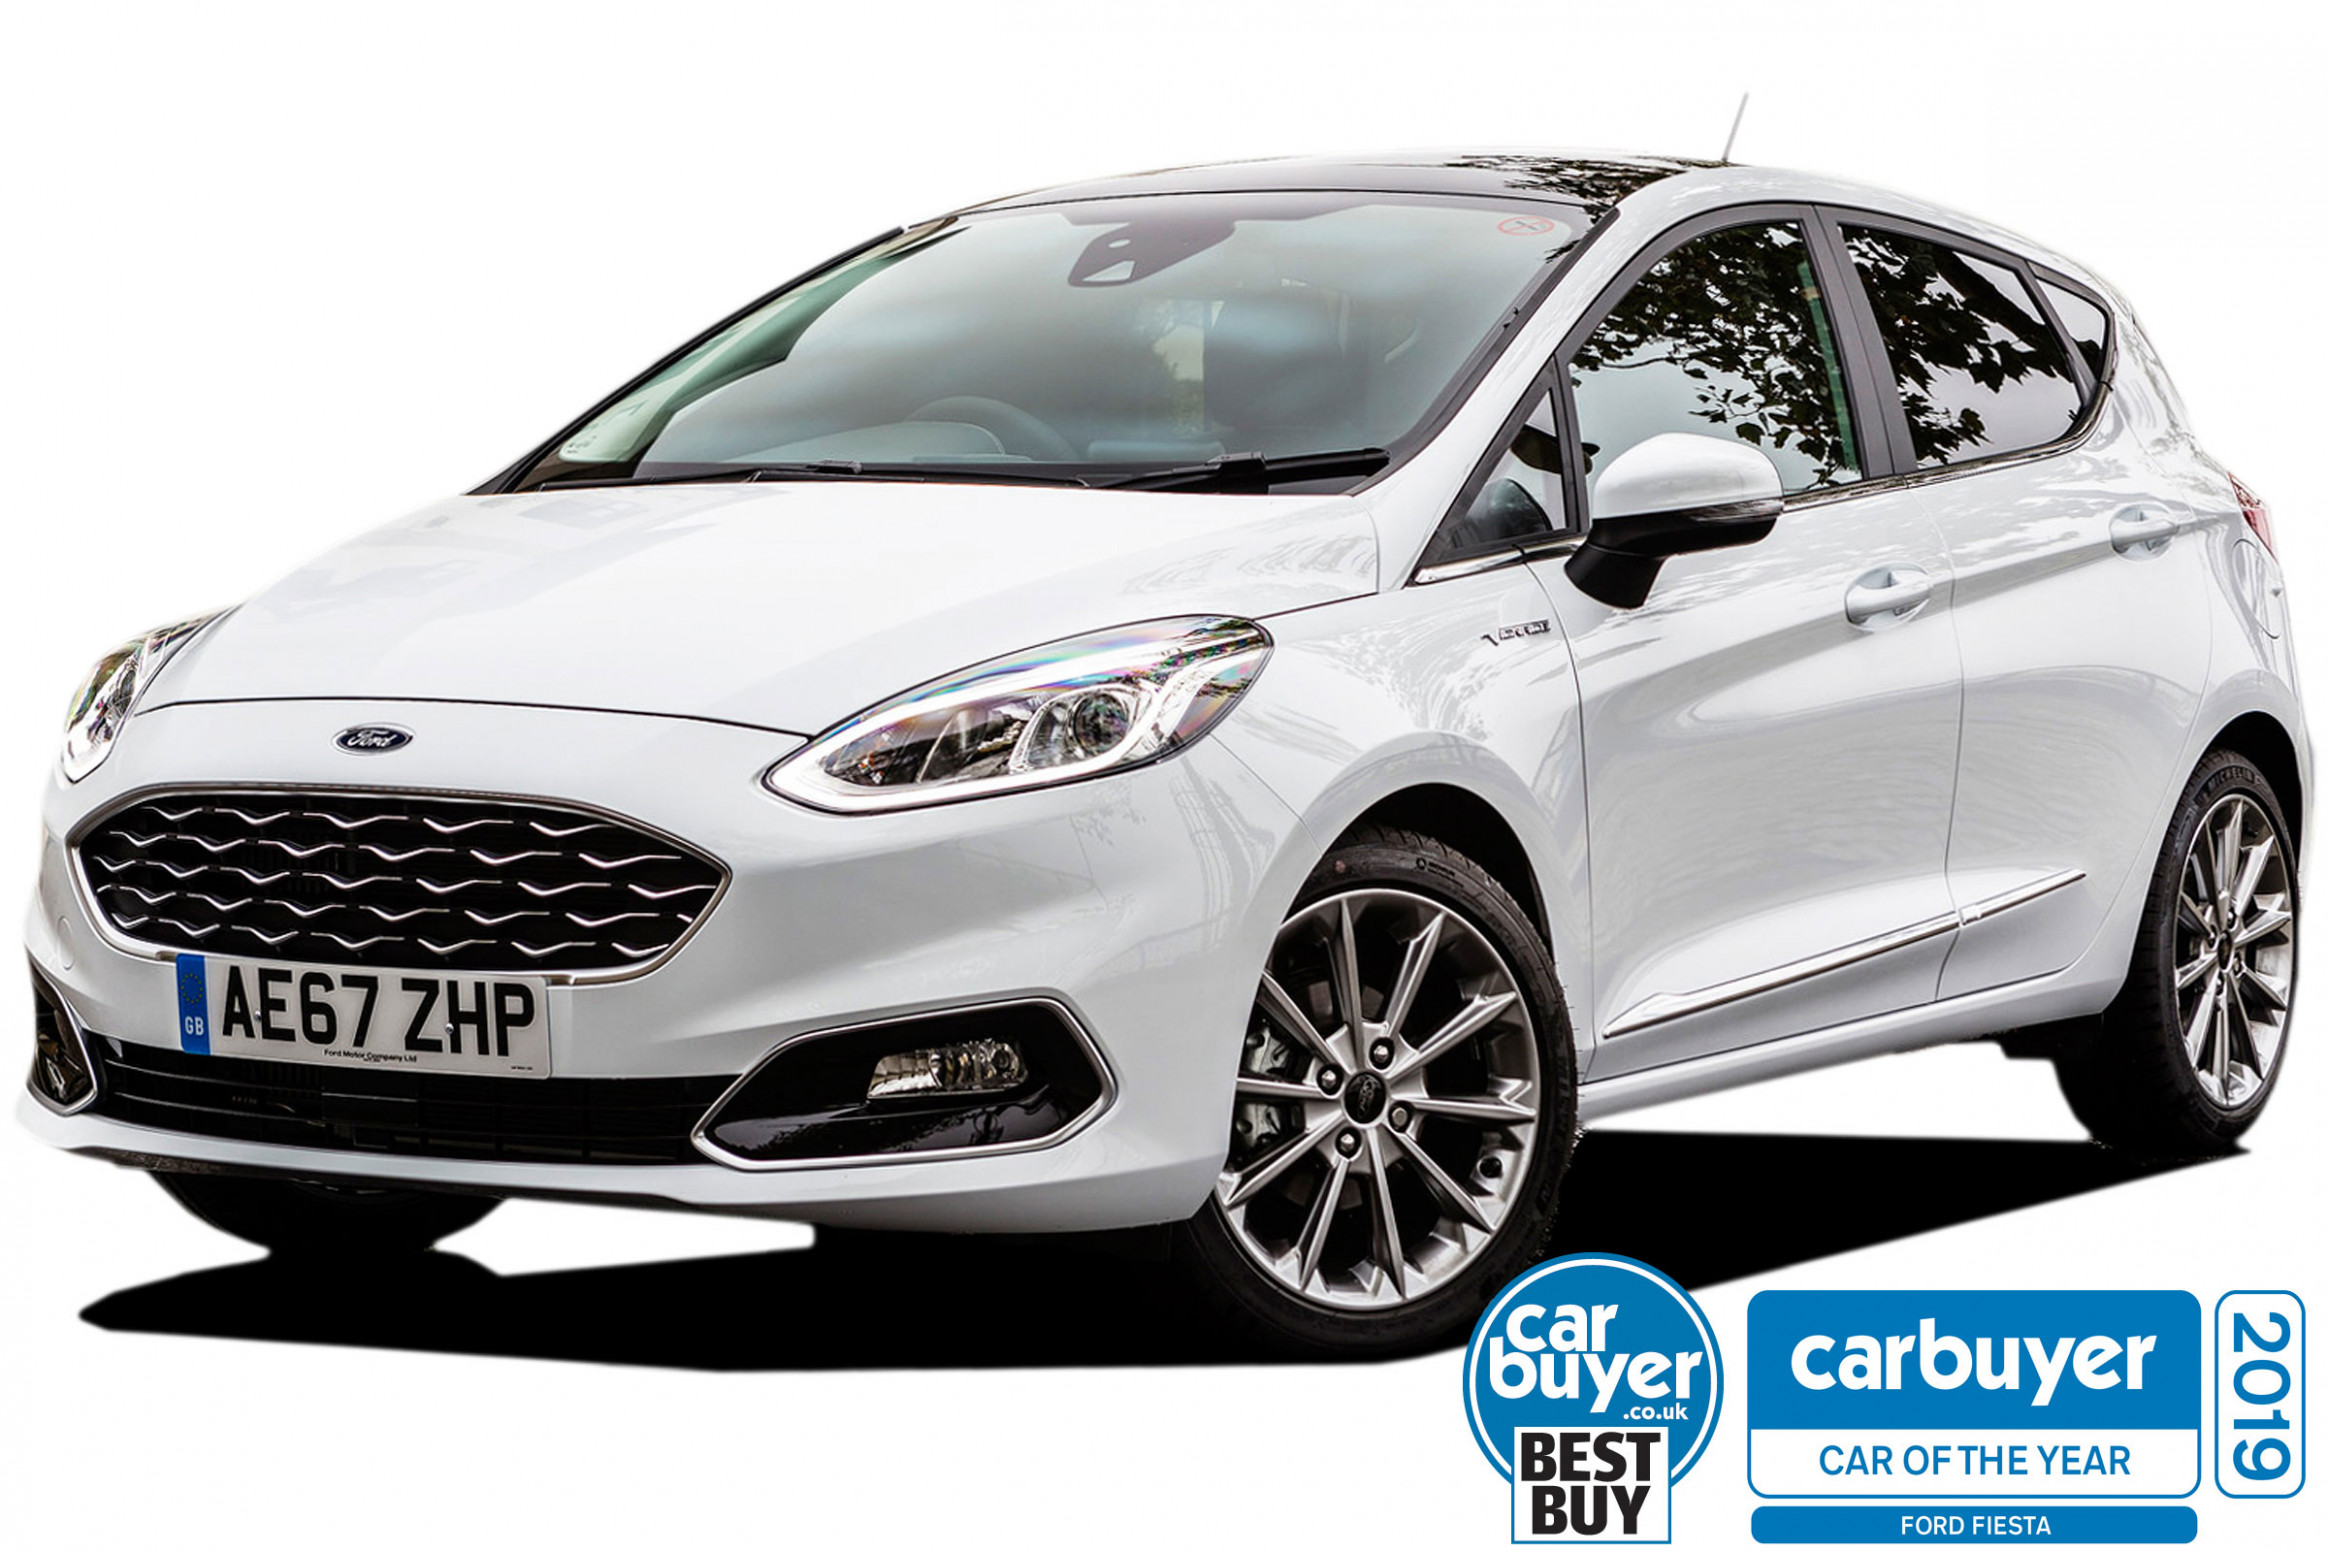 Ford Fiesta hatchback 7 review | Carbuyer - ford fiesta zetec 2020 review